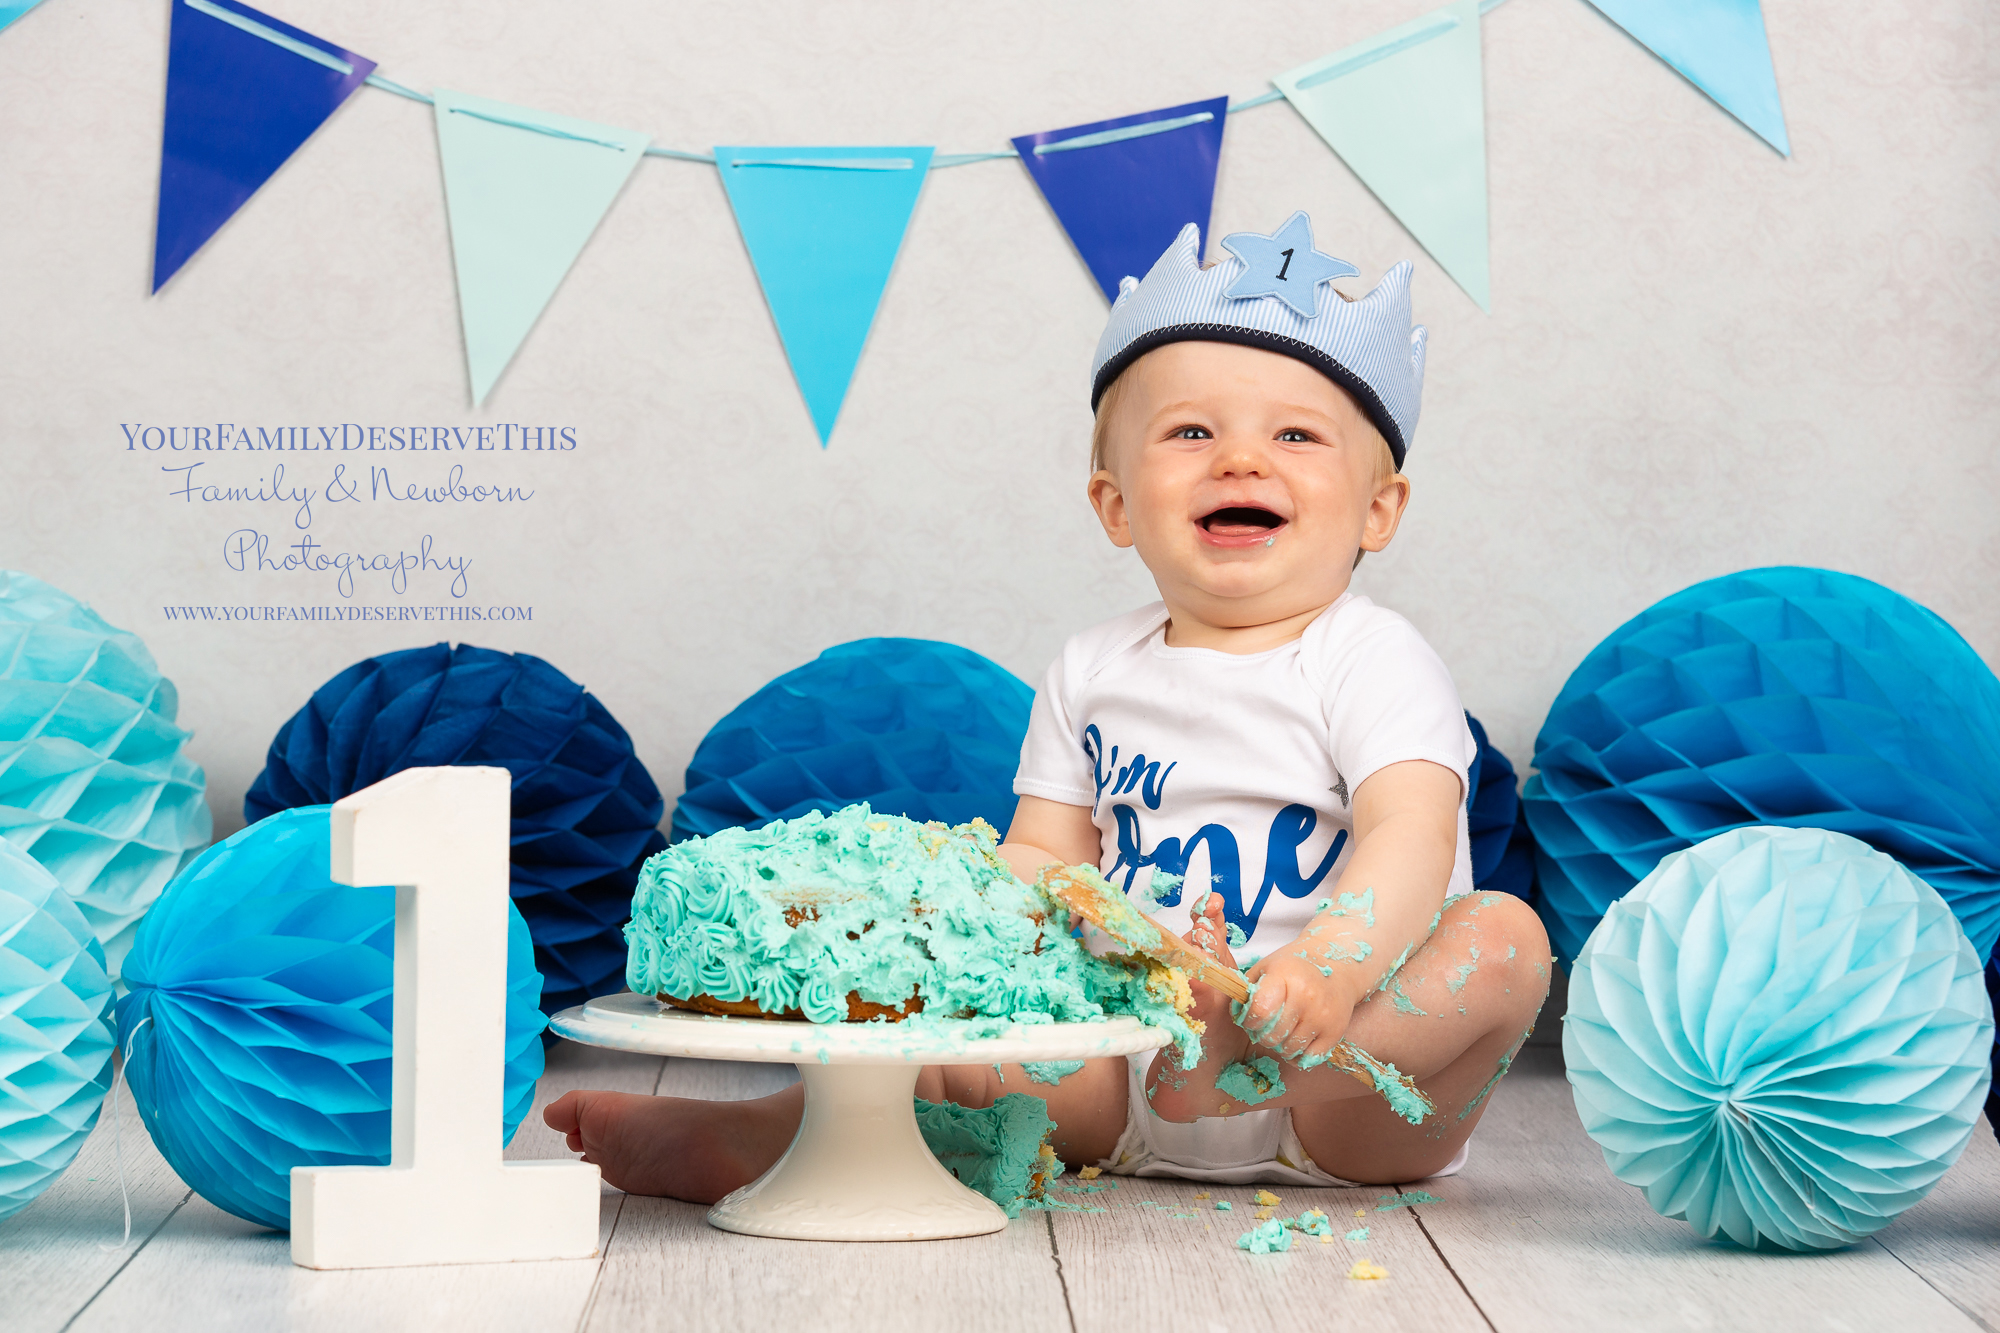 Mum chose an 'I'm One' body suit and a soft number 1 crown for little Theo to wear for his cake smash.